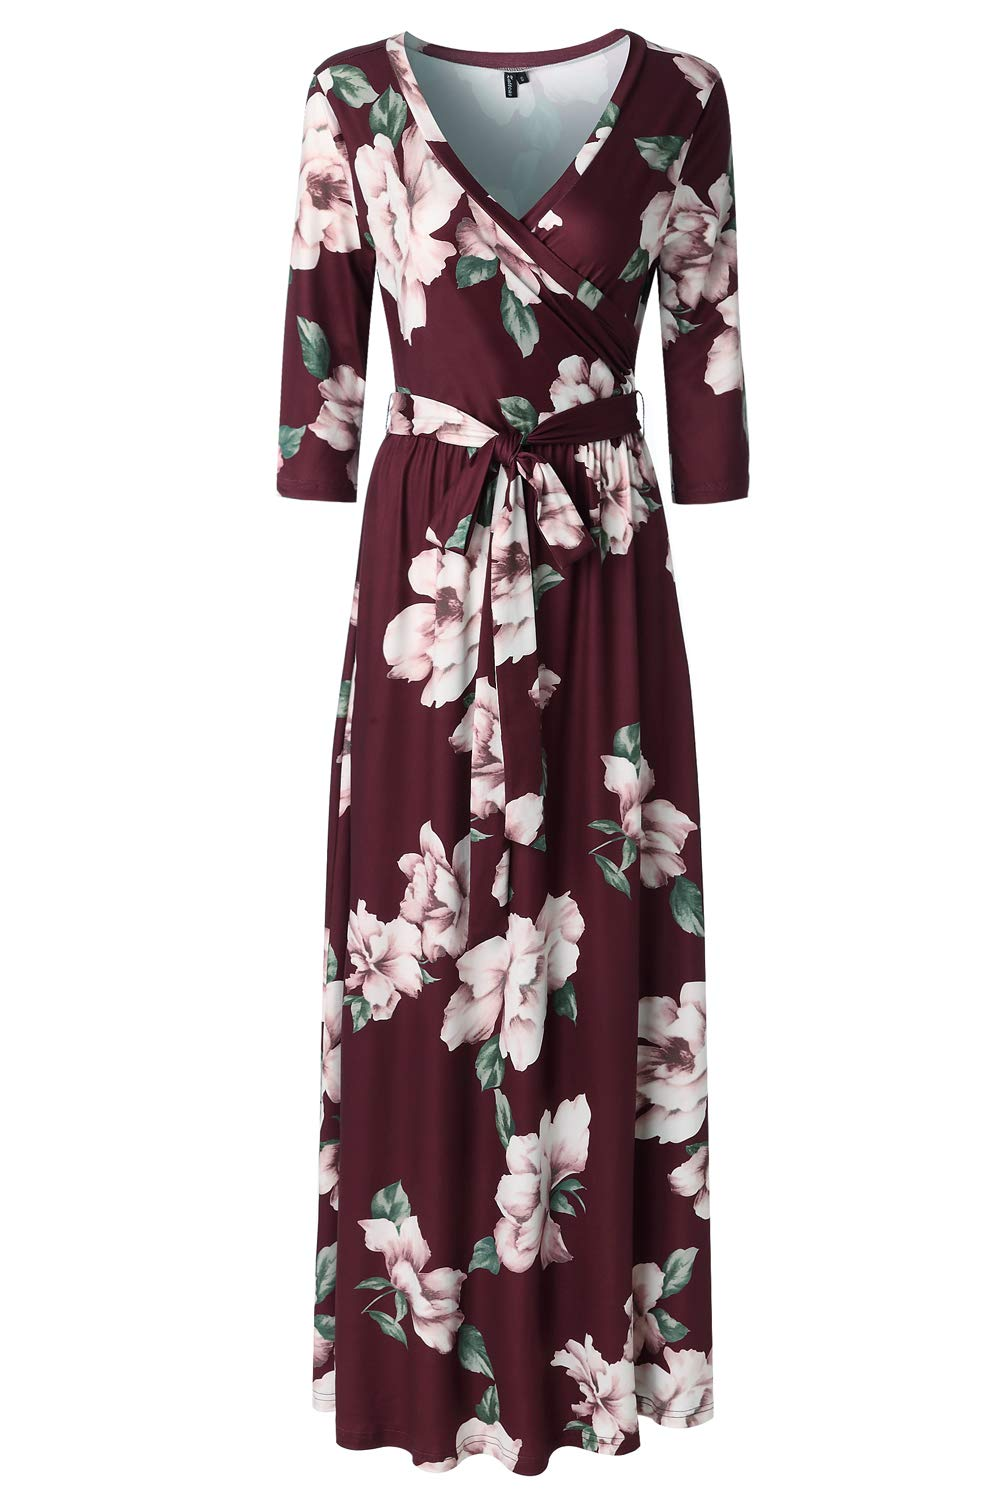 Zattcas Womens 3/4 Sleeve Floral Print Faux Wrap Long Maxi Dress with Belt (X-Large, Wine Red)